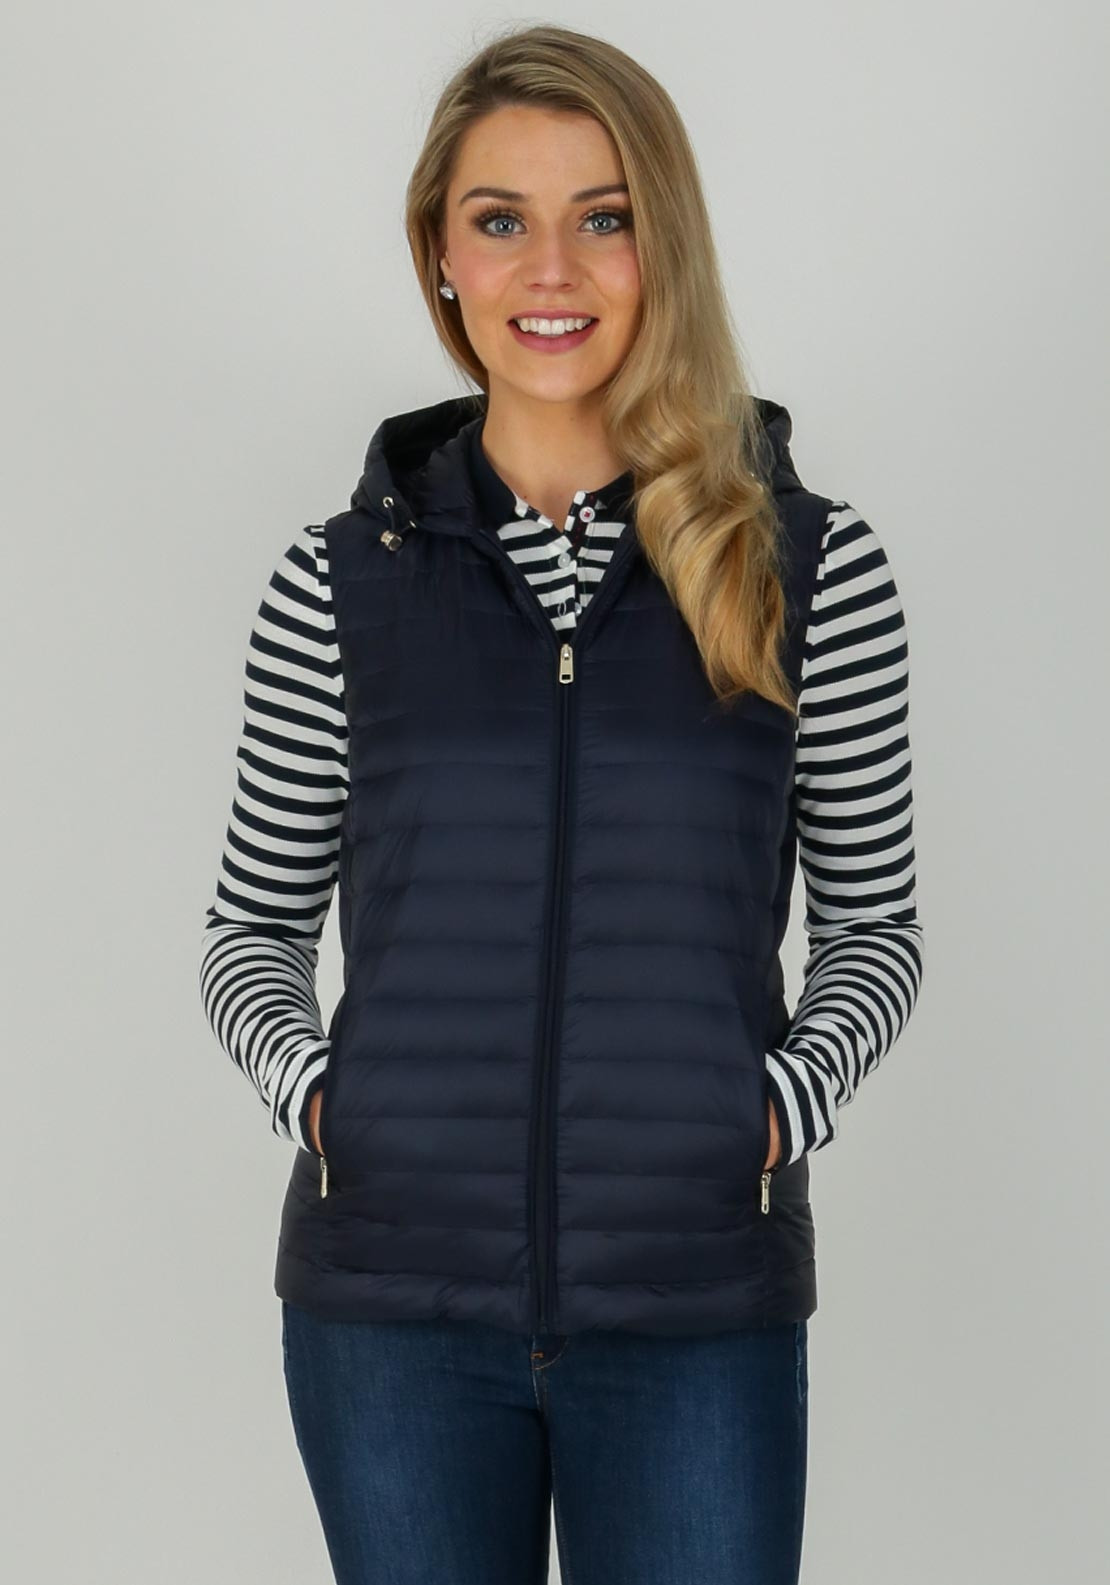 997aee4c Tommy Hilfiger Womens Hooded Gilet, Navy | McElhinneys